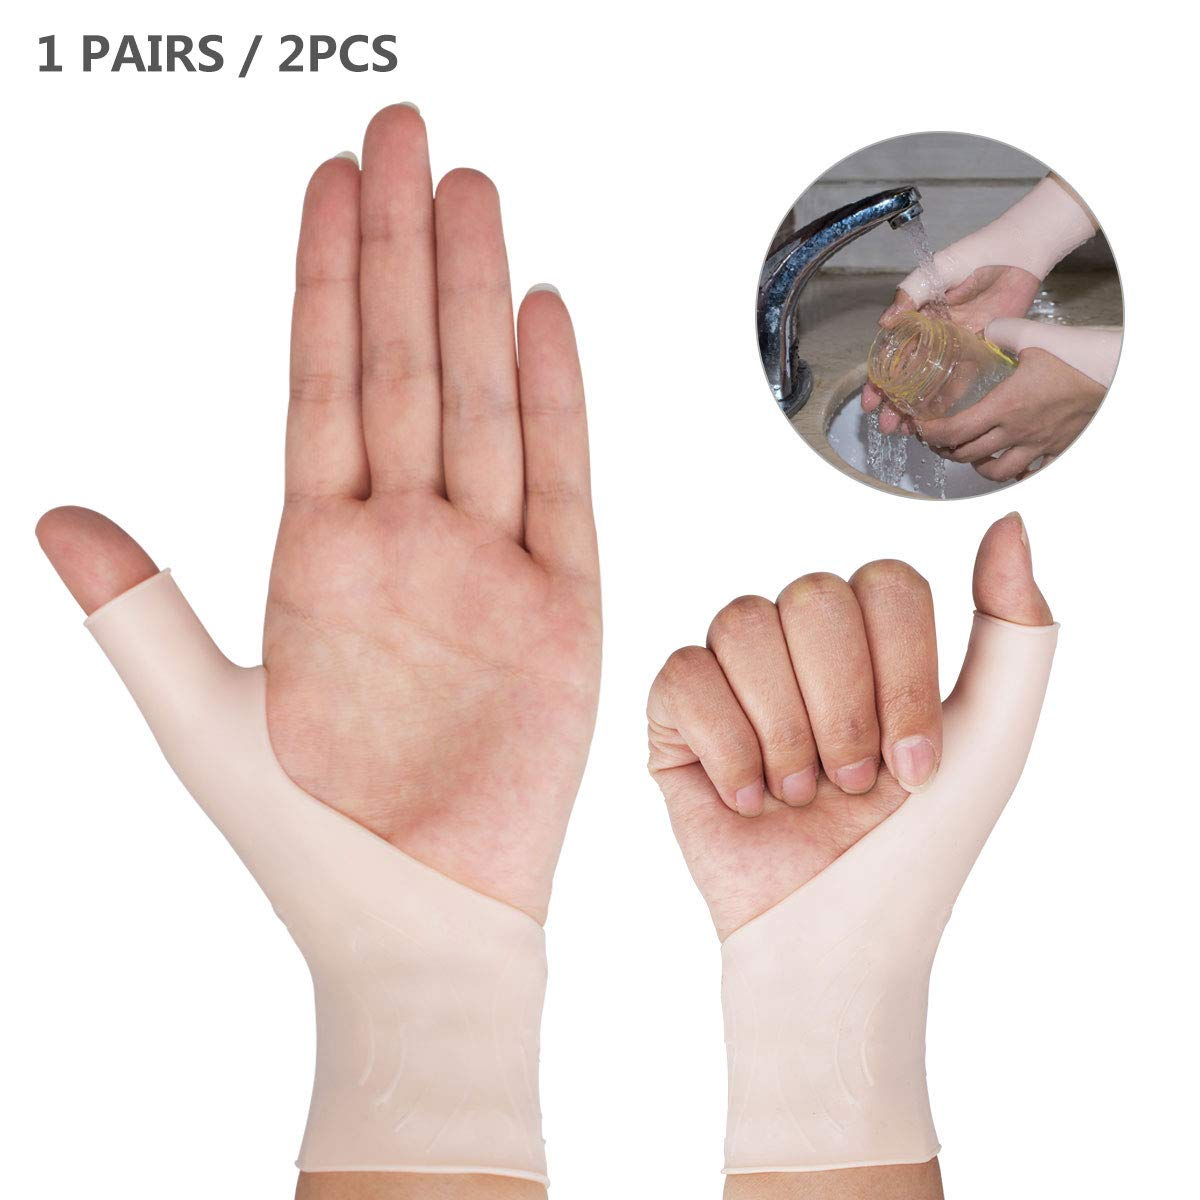 Wrist Support Braces - Gel Wrist Brace for Left and Right Hand | Proven to Relieve Wrist & Thumb Pain from Tenosynovitis, Arthritis, Rheumatism, Carpal Tunnel & More (Model 1)